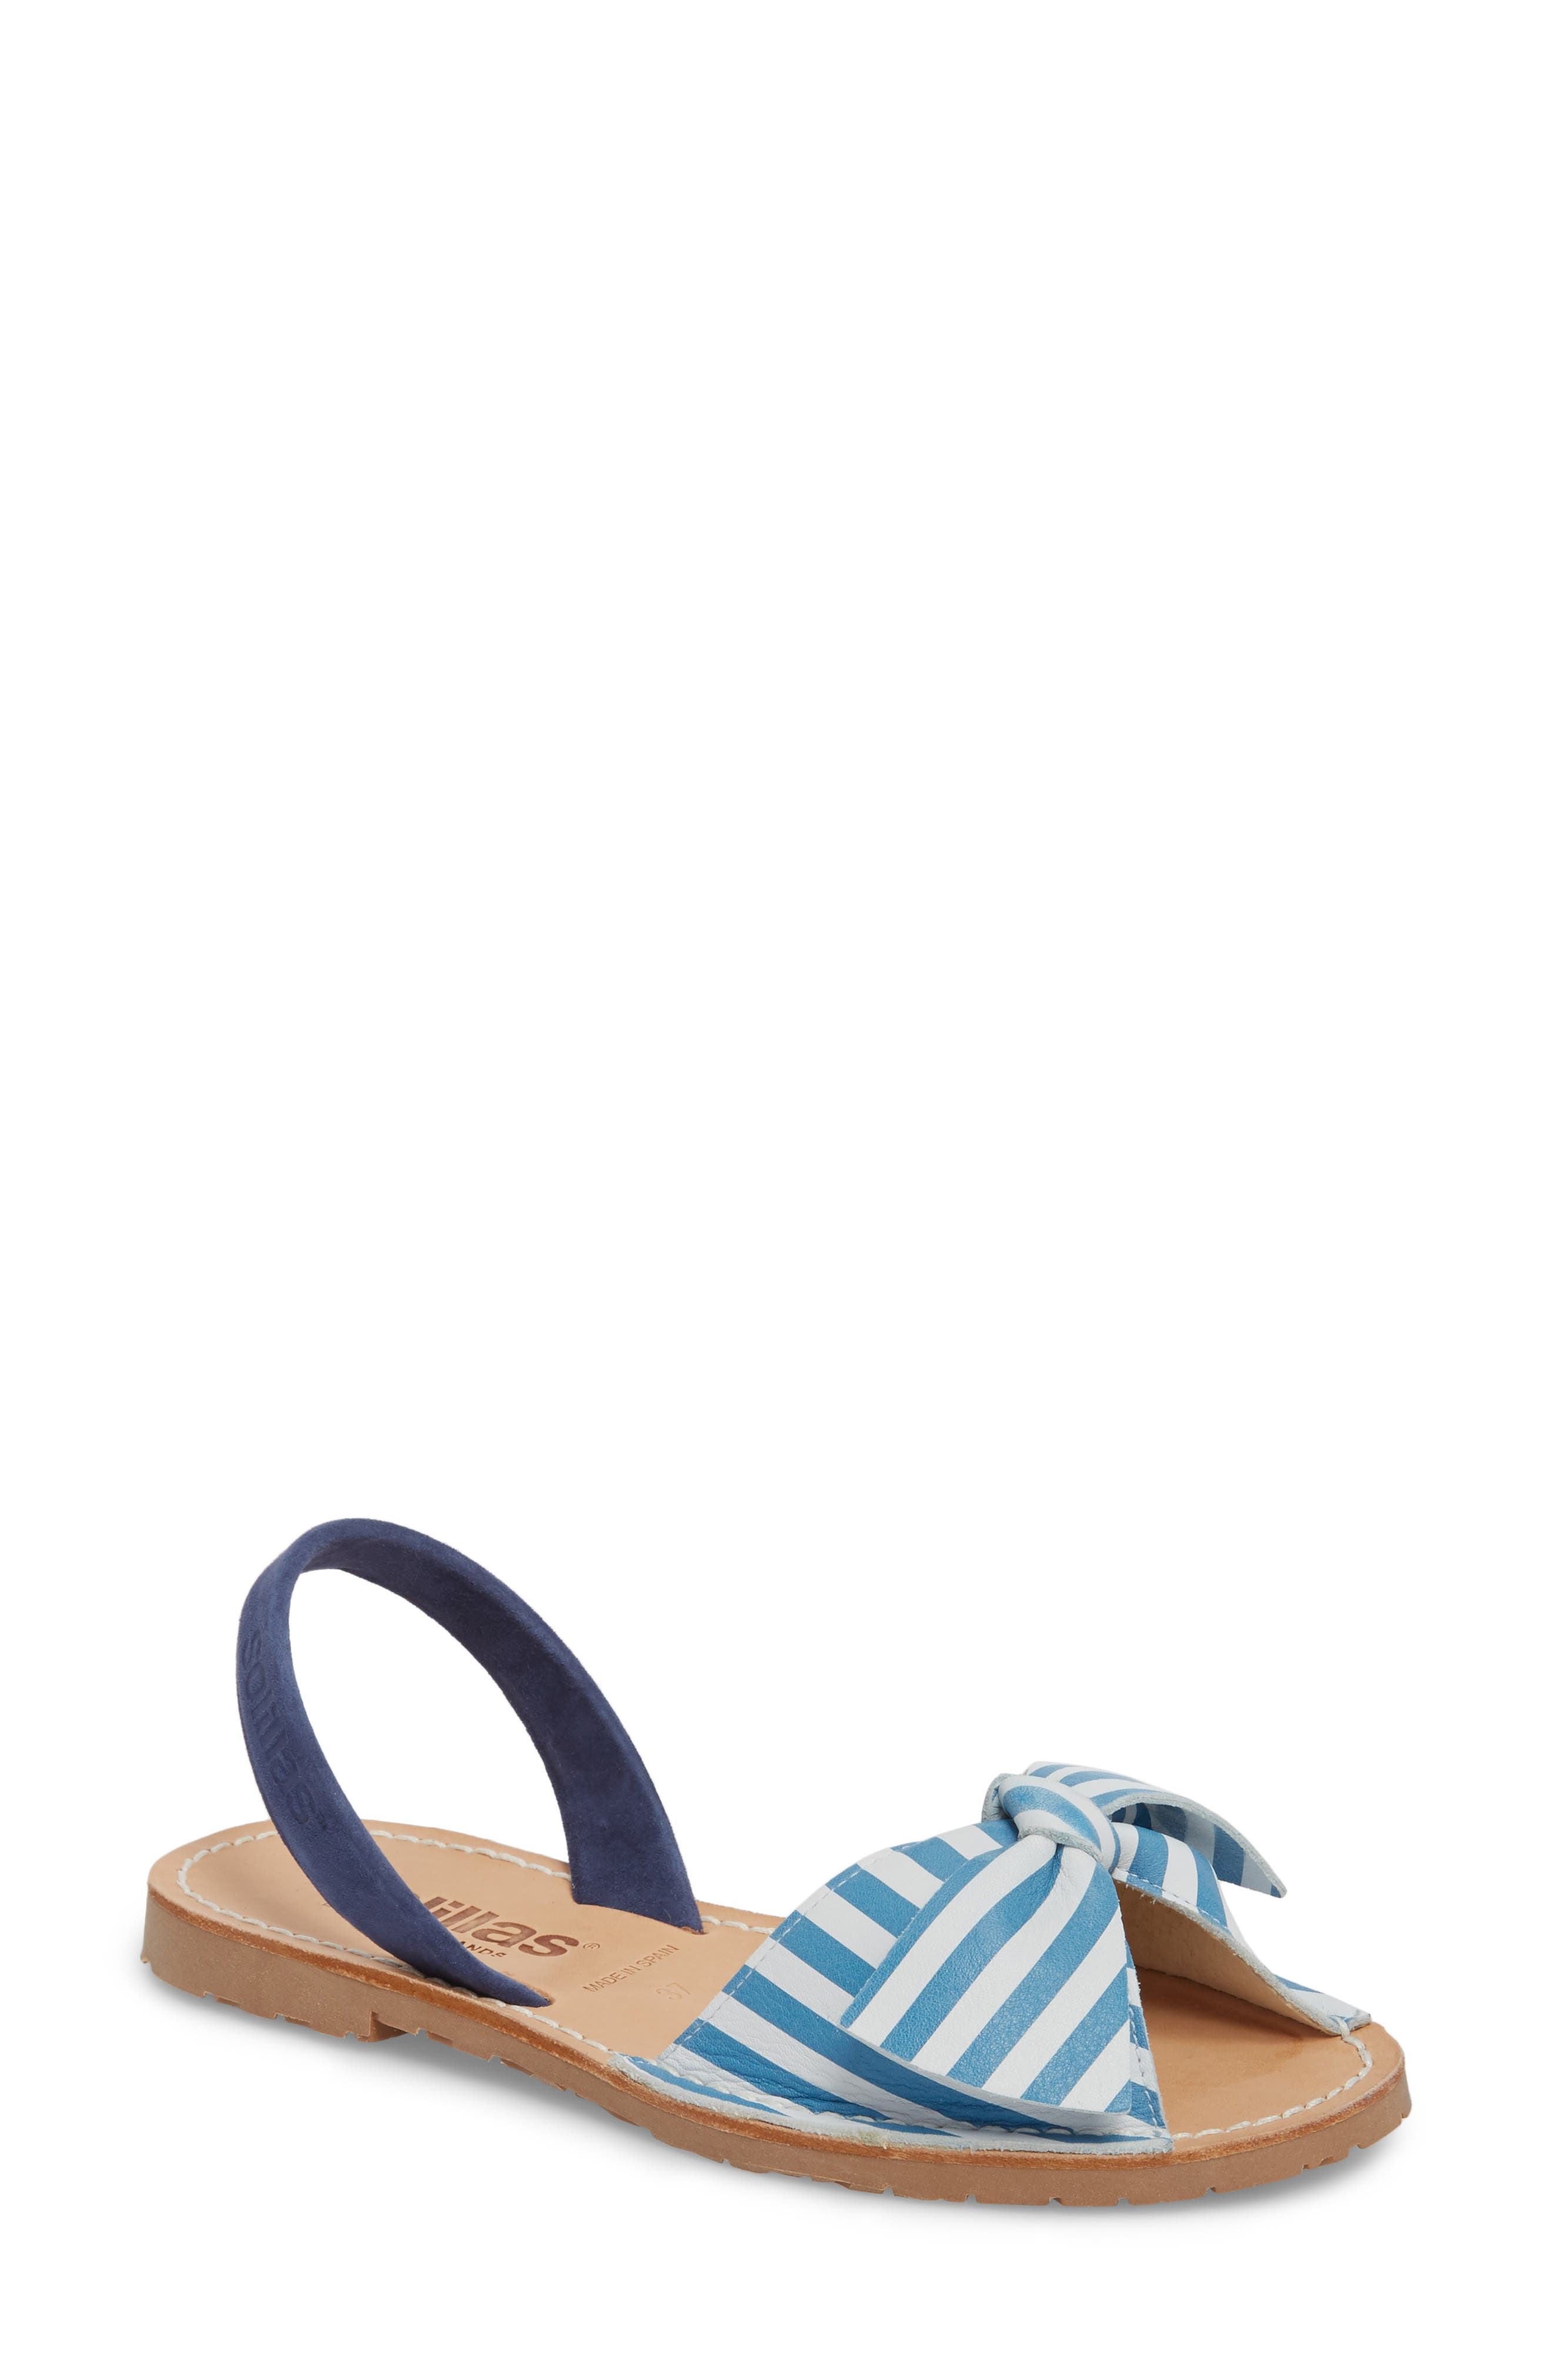 Bow Sandal,                         Main,                         color, BLUE AND WHITE